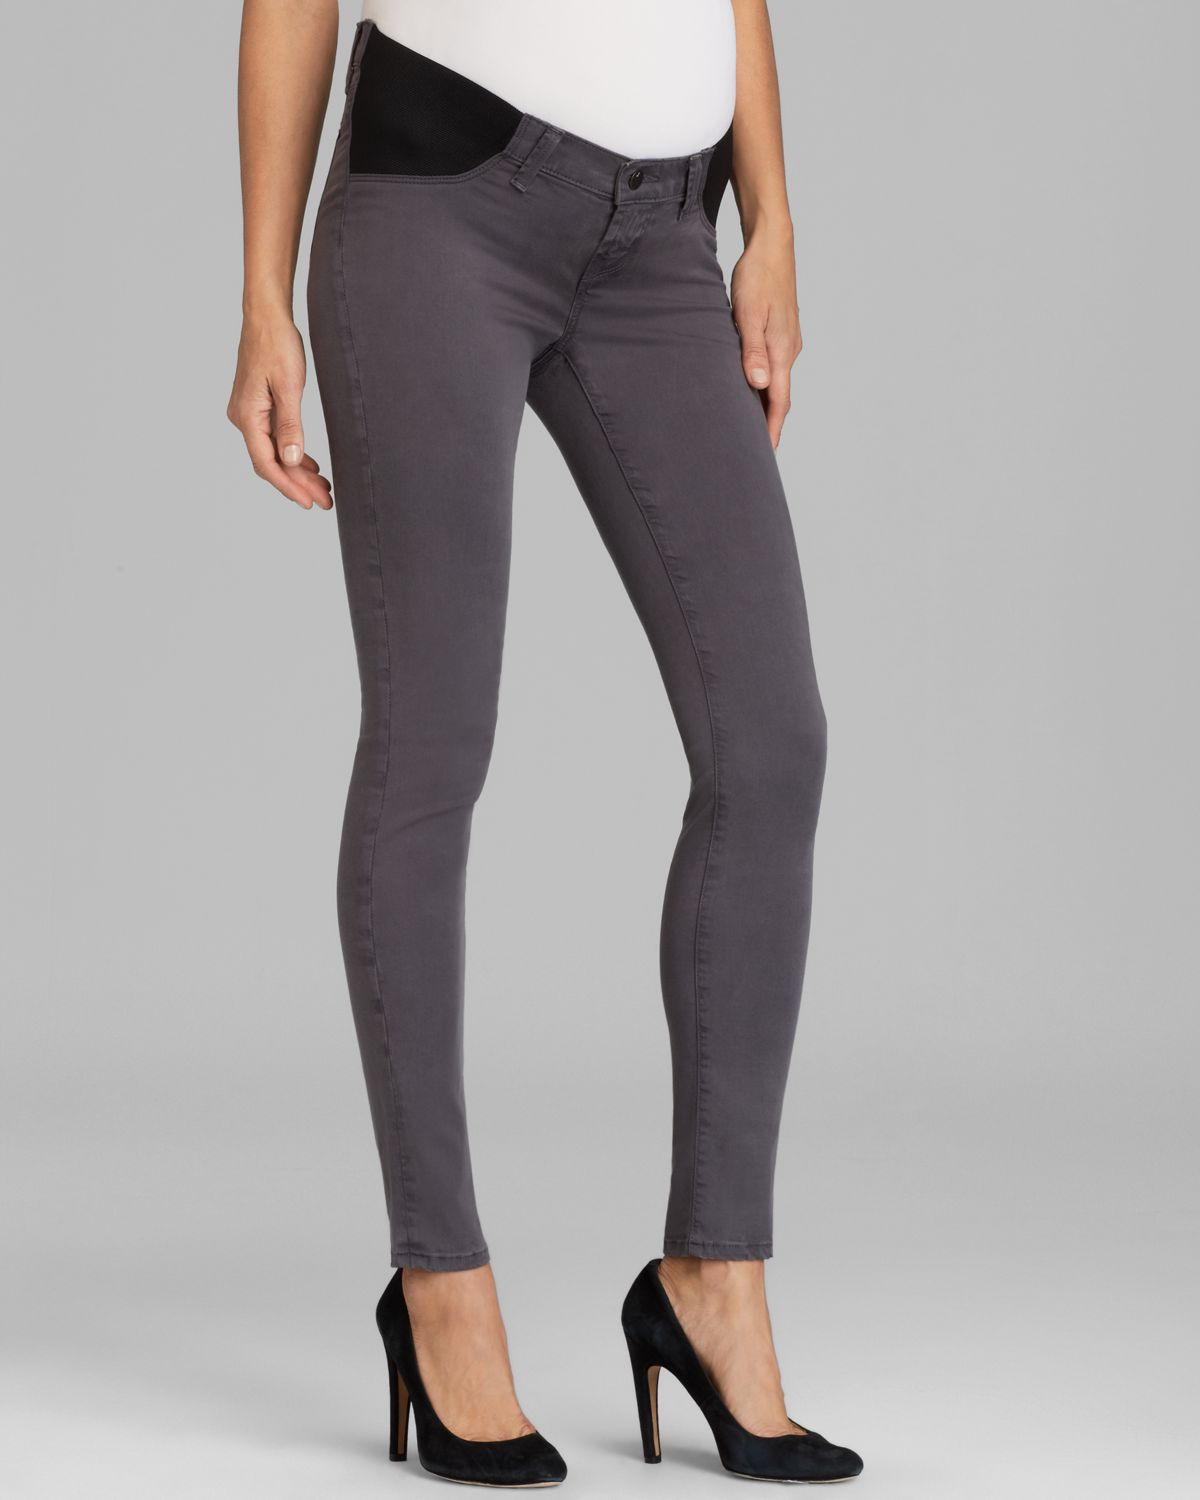 J brand Maternity Jeans Mama J Legging in Ash Grey Sateen in Gray ...